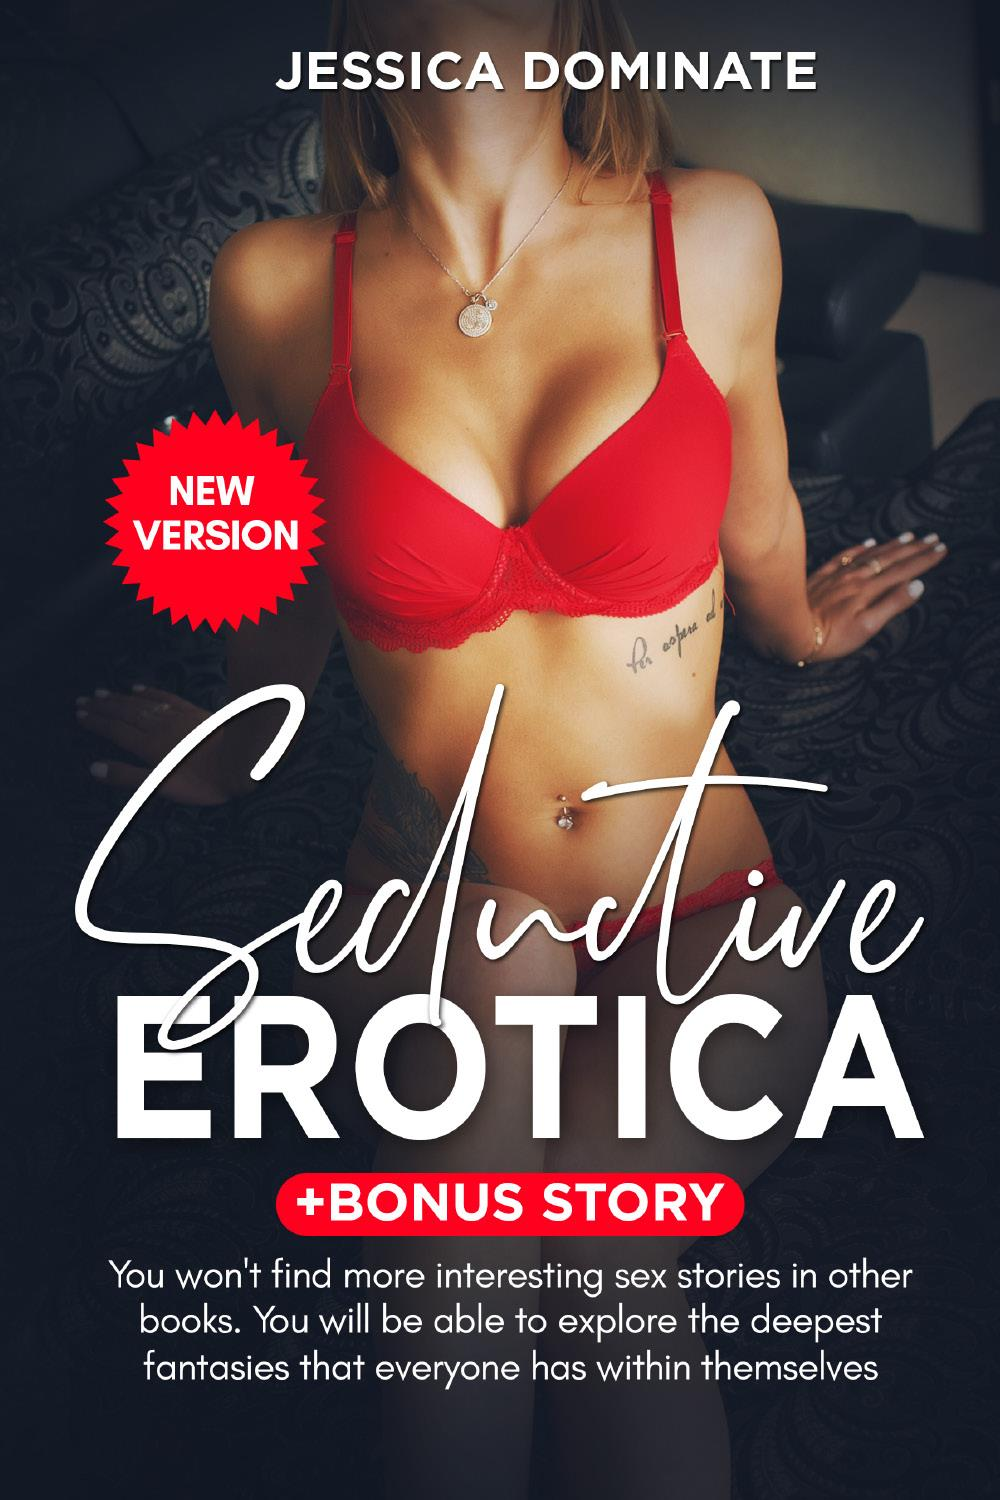 Seductive Erotica + Bonus Story. You won't find more interesting sex stories in other books. You will be able to explore the deepest fantasies that everyone has within themselves (New Version)